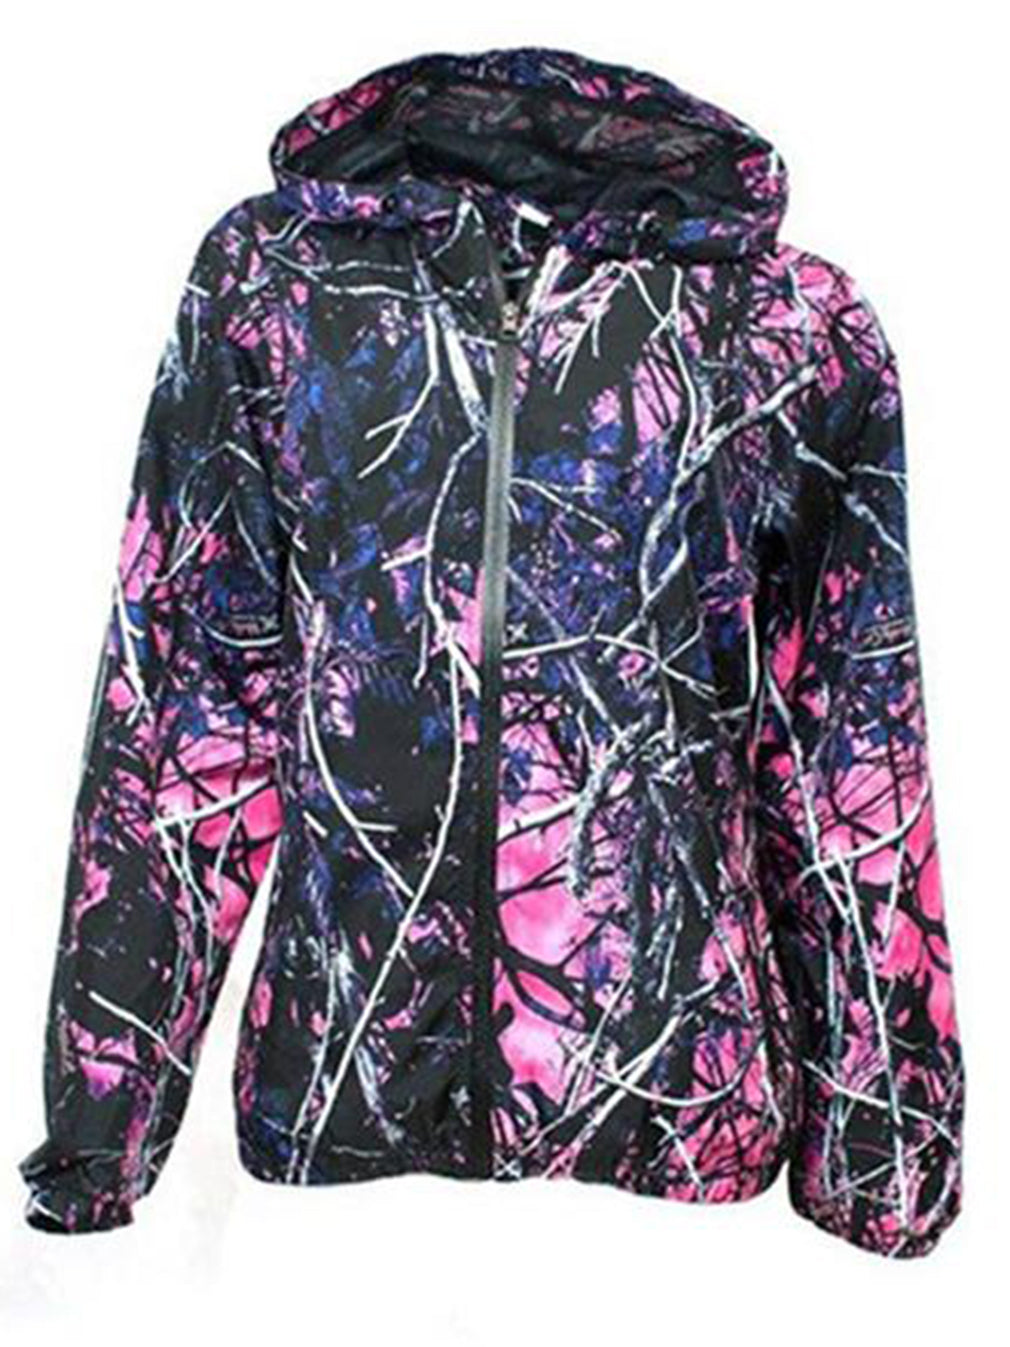 9aaaf611f94d9 Camo Hoodie, Muddy Girl Wind Breaker Jacket - American Outdoor Woman